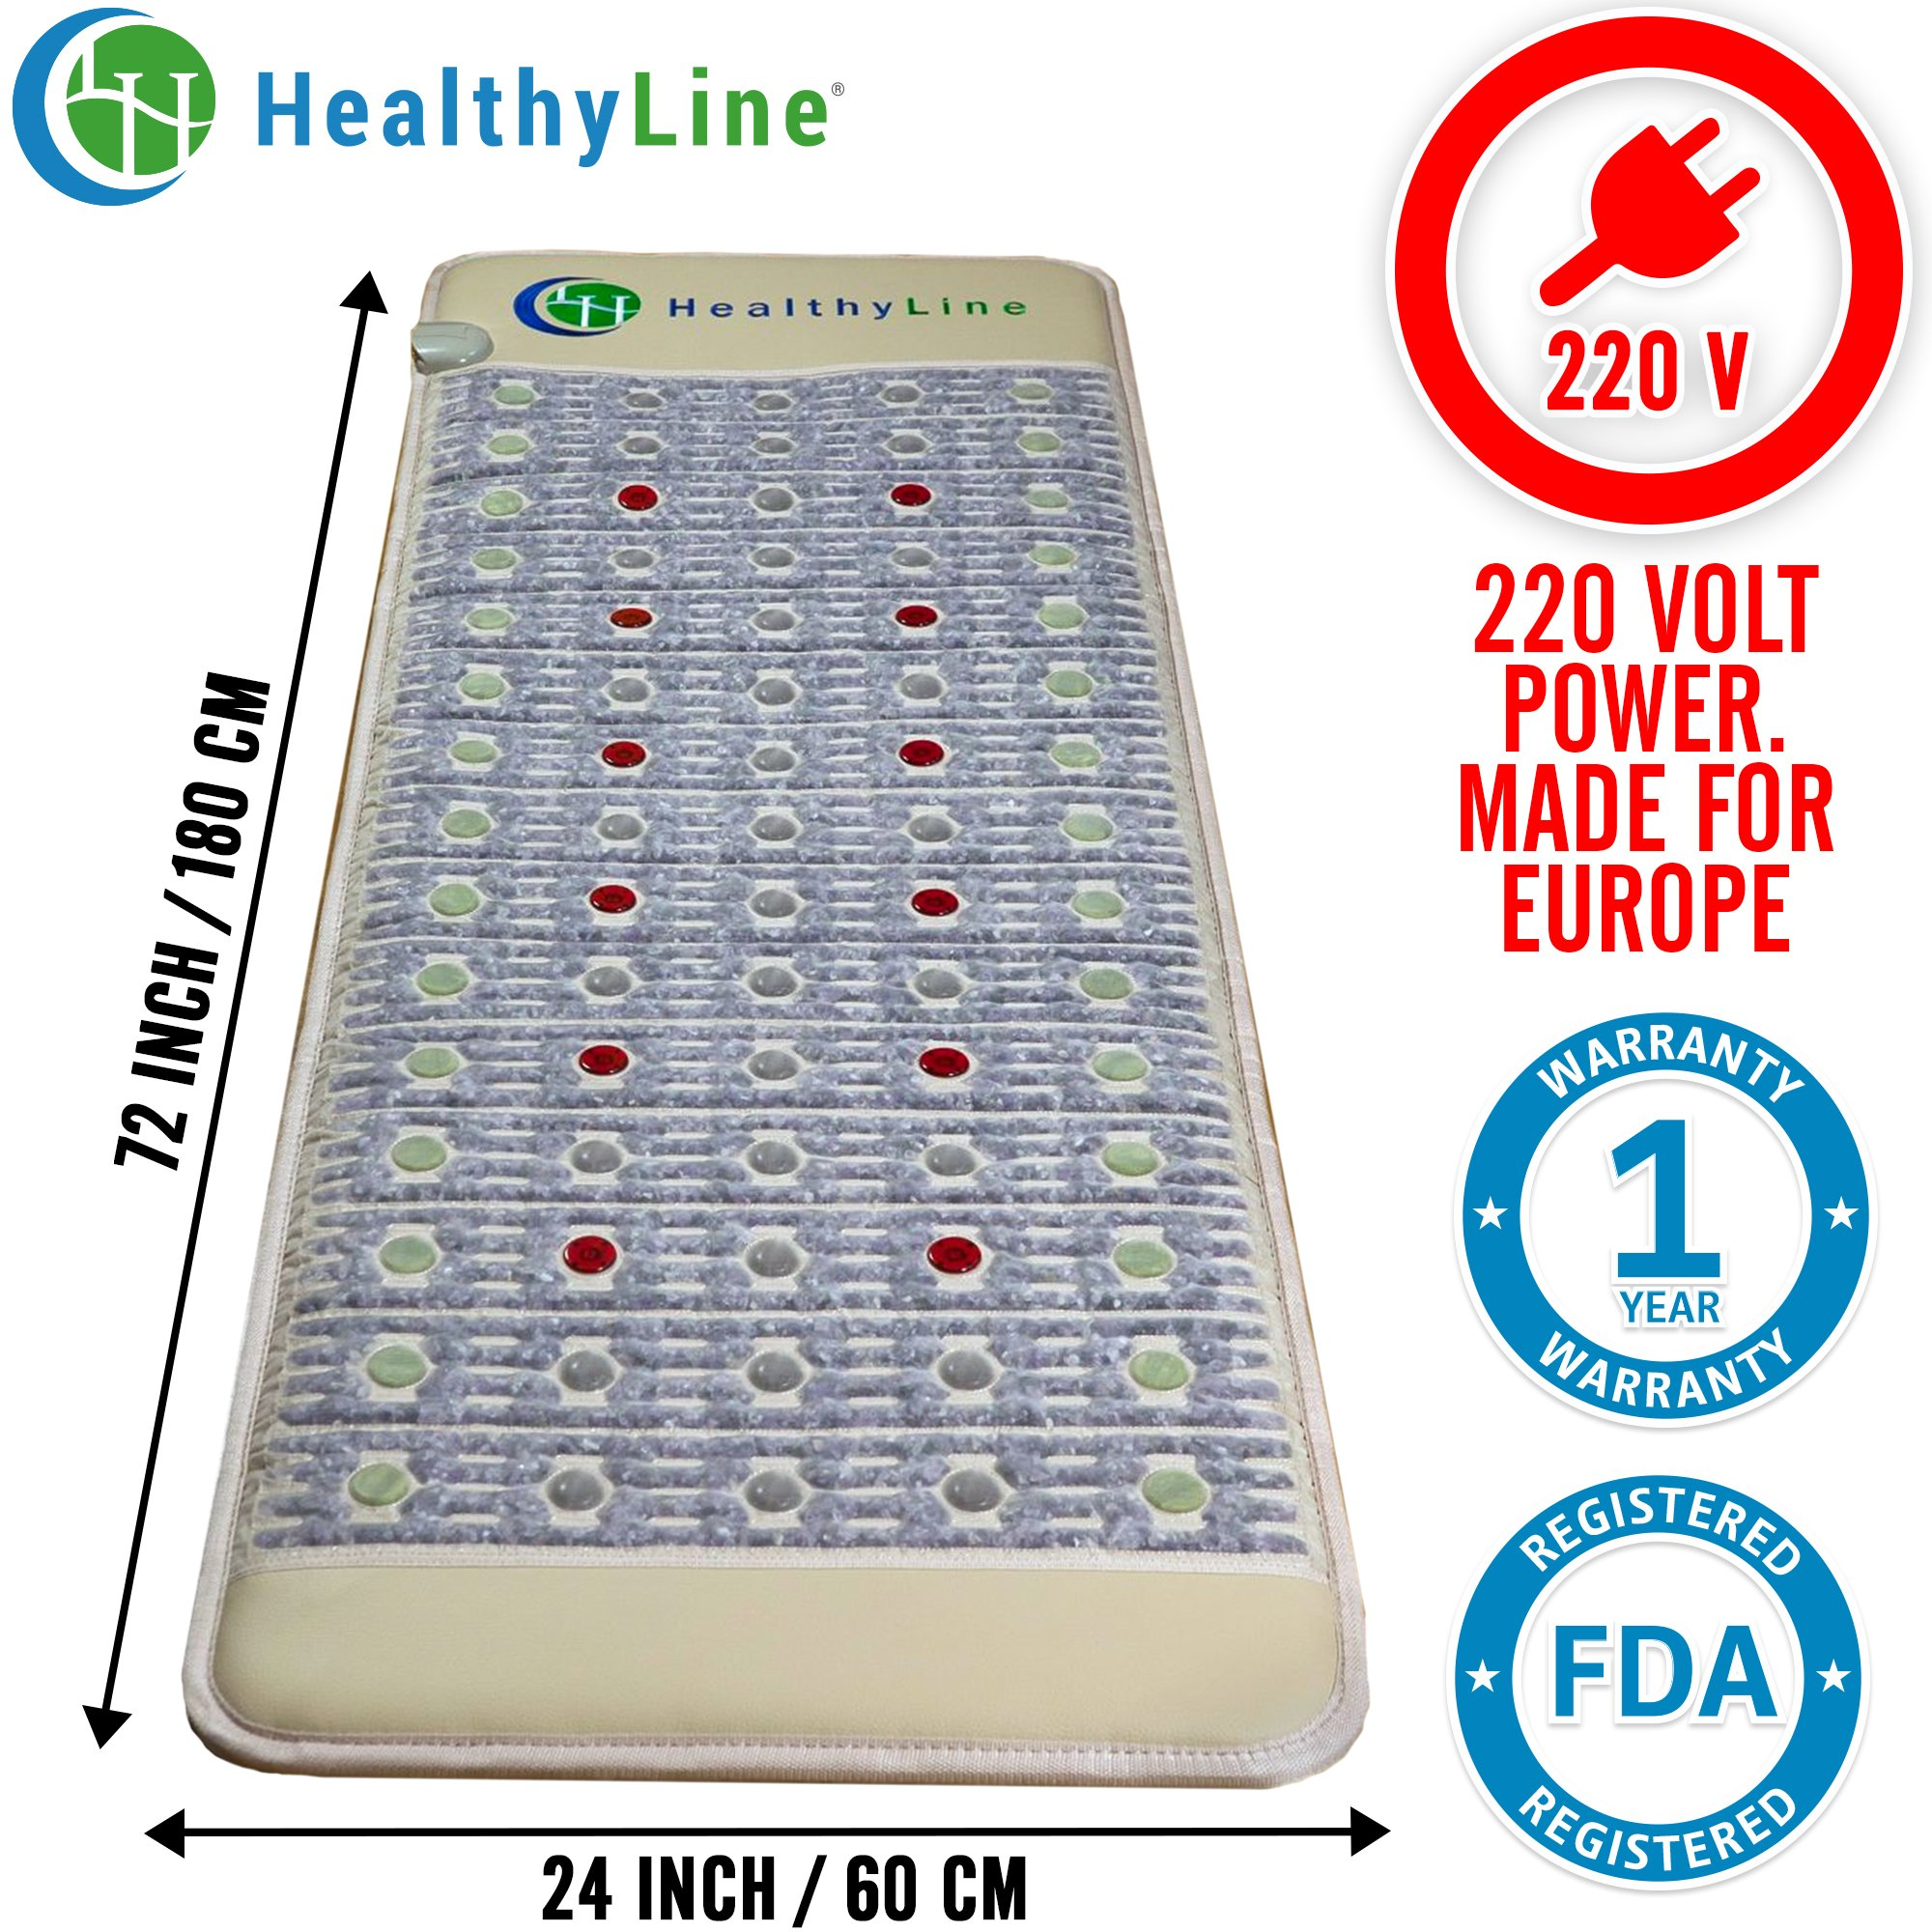 HealhyLine Natural Infrared Heating Mat - Relieve Pain, Sore Muscles, Arthritis and Injury Recovery - European 220 Volt - 6 PEMF Coils, 12 Photon LEDs, Amethyst, Jade & Tourmaline Ceramic Stone Firm (